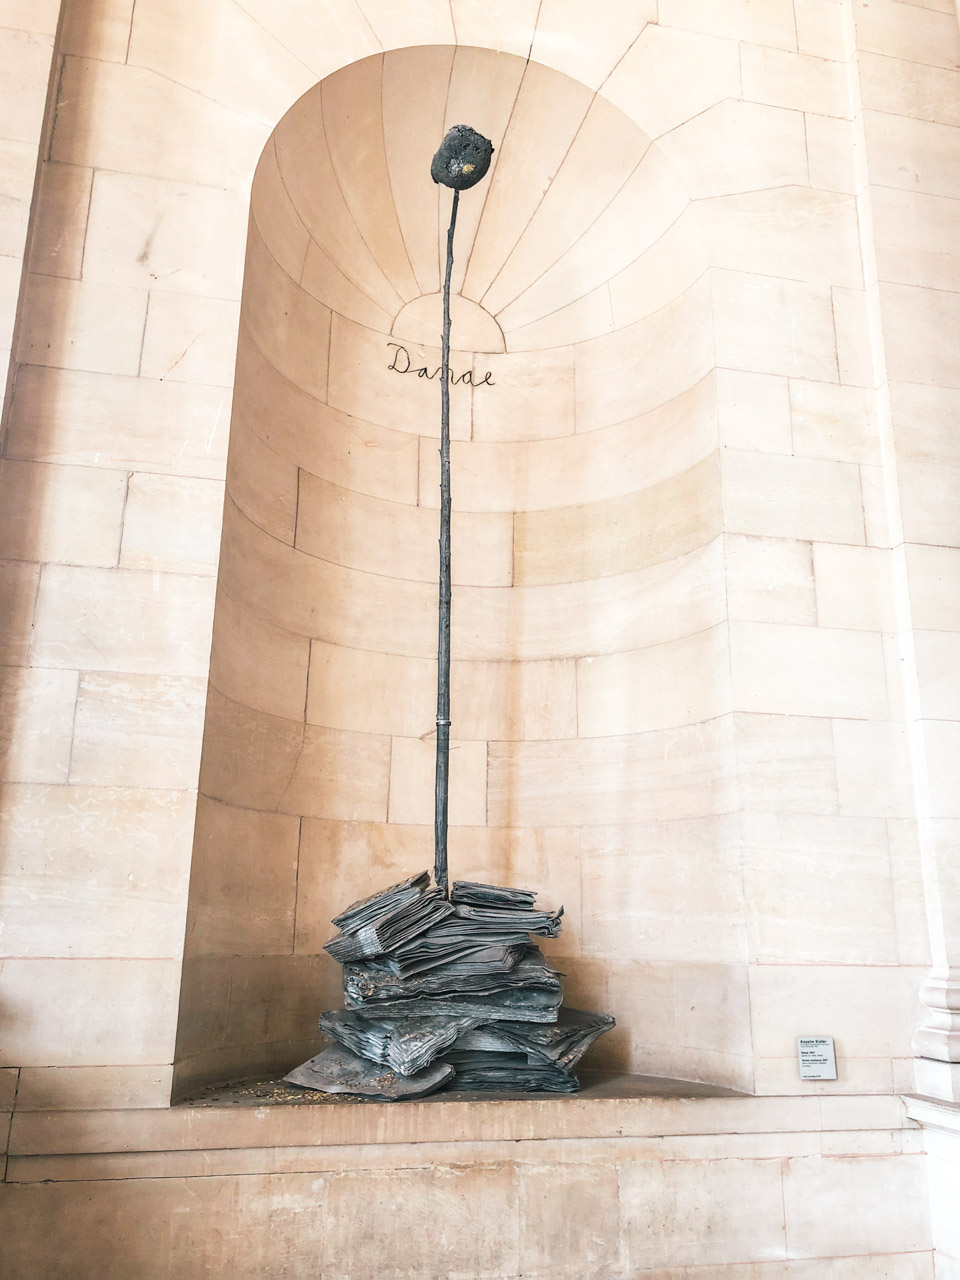 The Danaë sculpture by Anselm Kiefer portraying a blackened depetaled sunflower emerging from a stack of books in the Louvre Museum in Paris, France